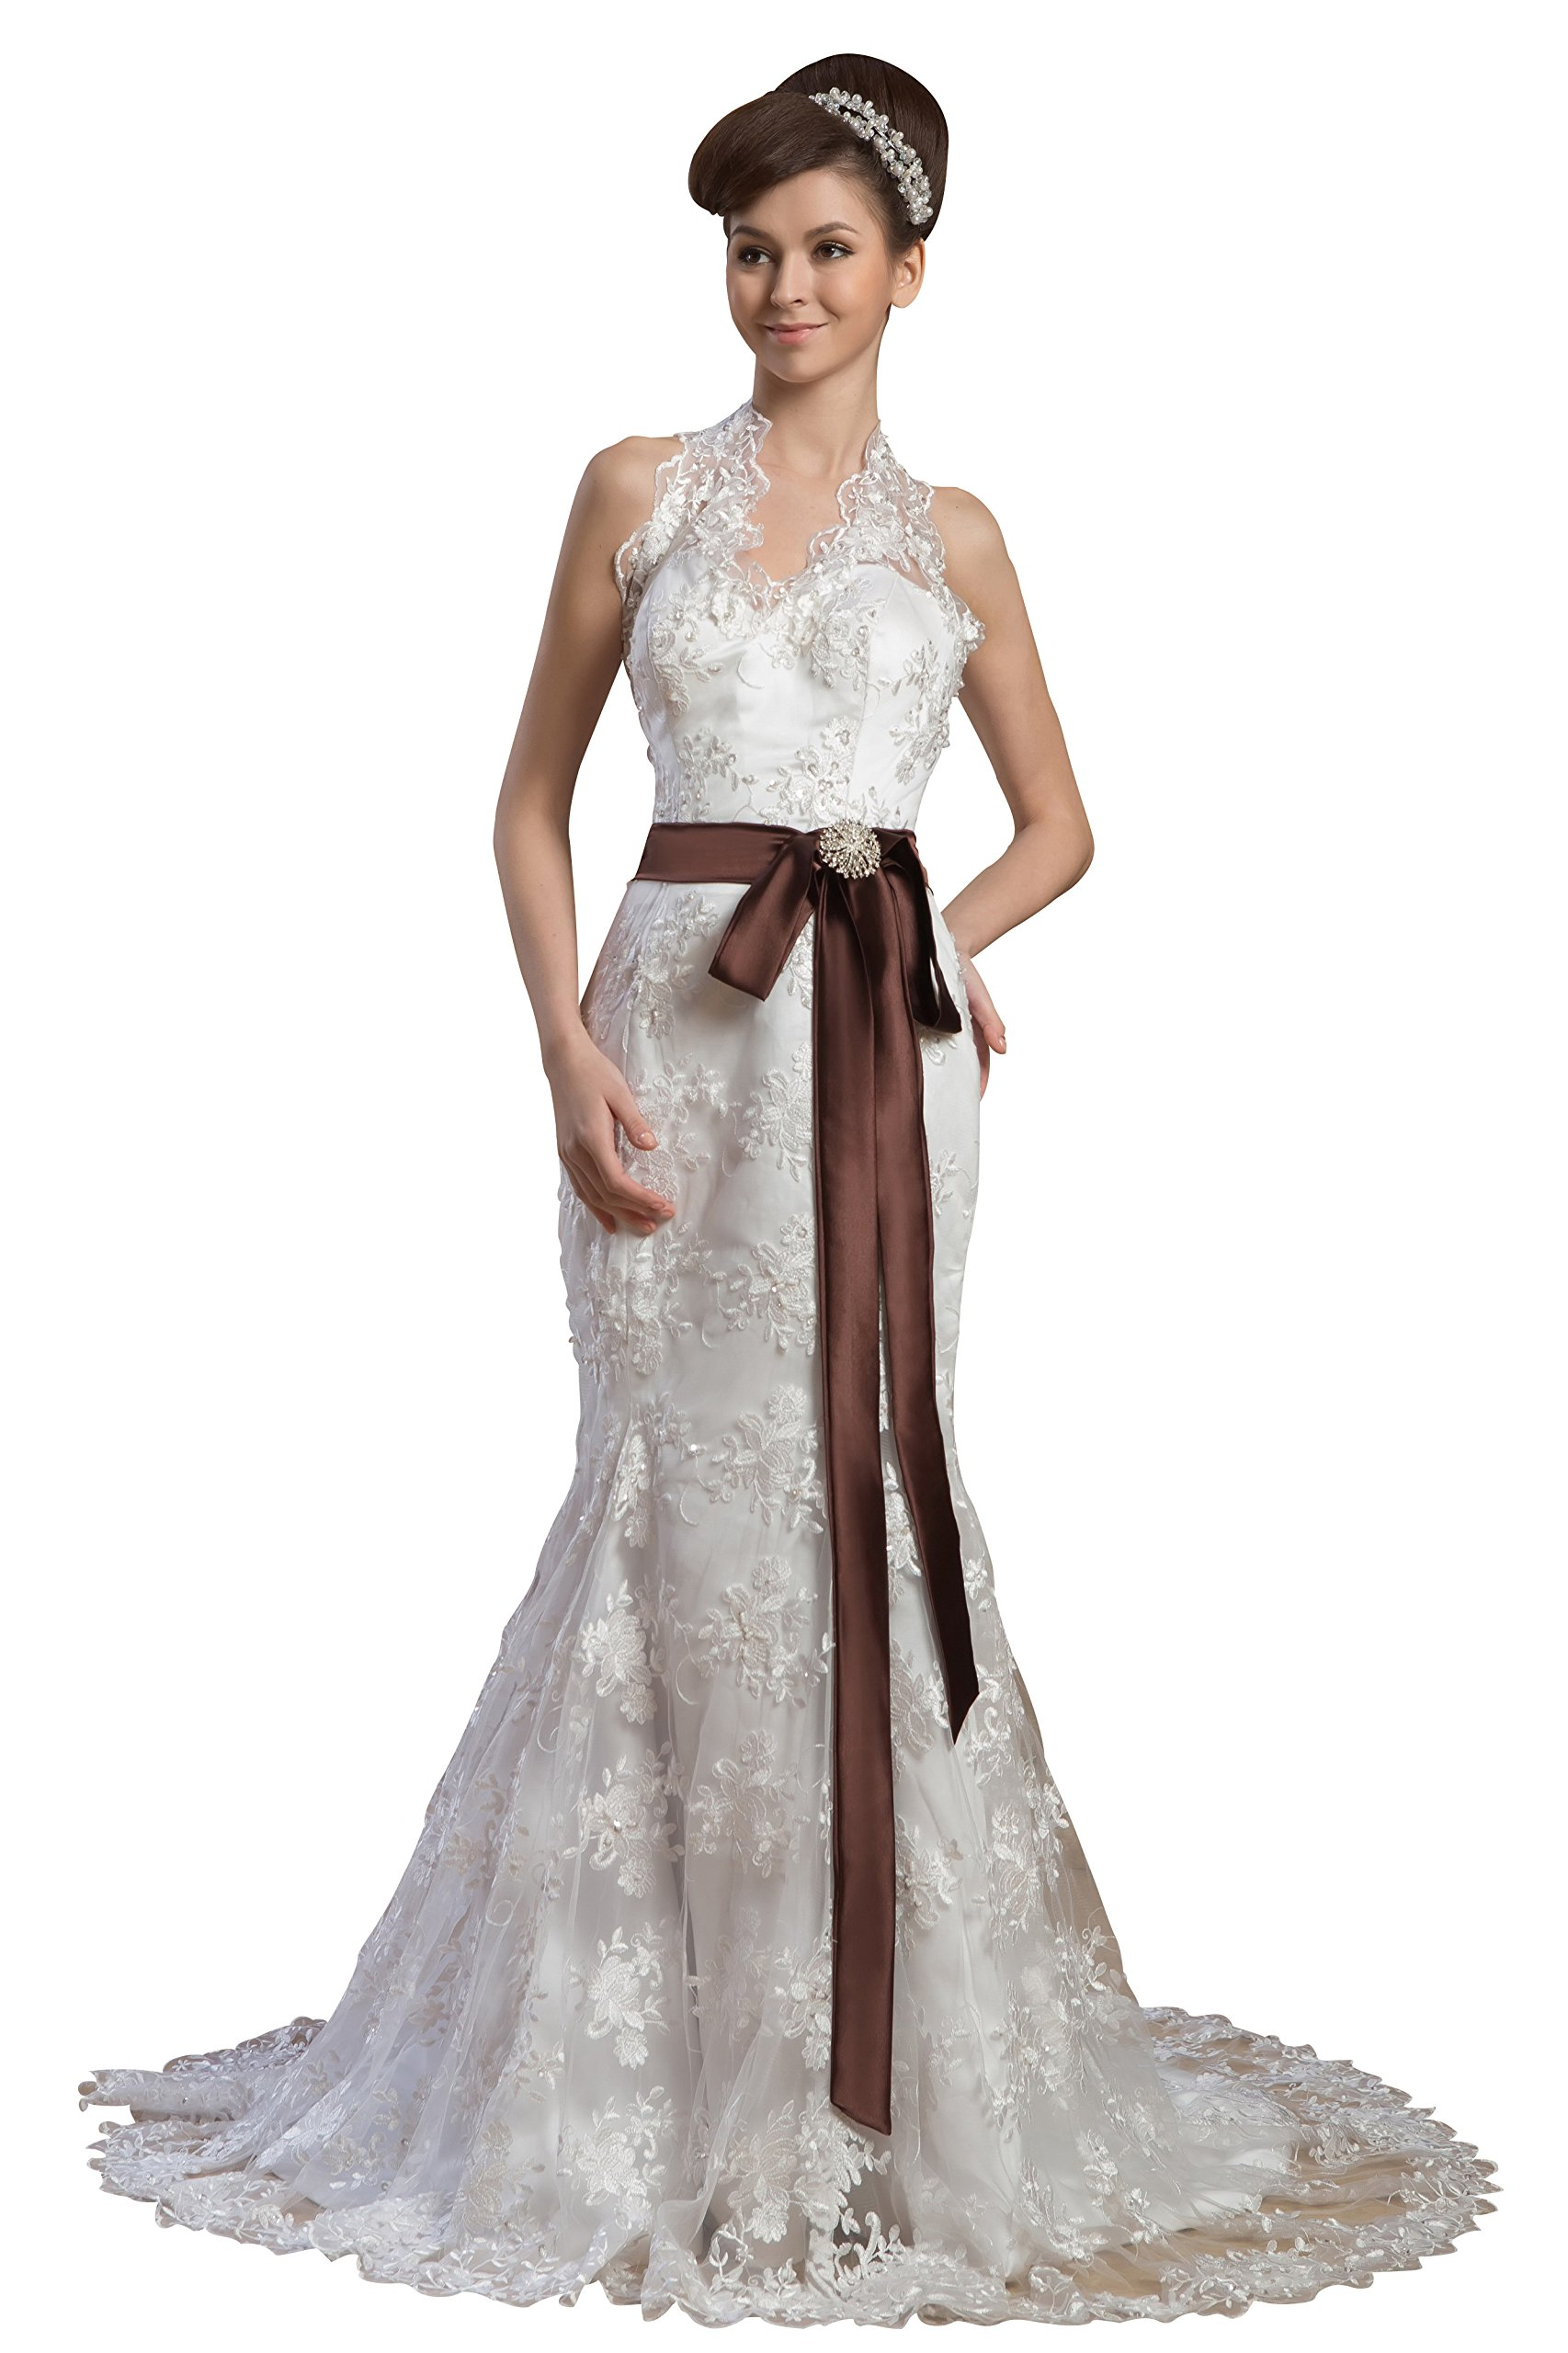 Vogue007 Womens Halter Satin Pongee Wedding Dress with Embroidery, ColorCards, 18